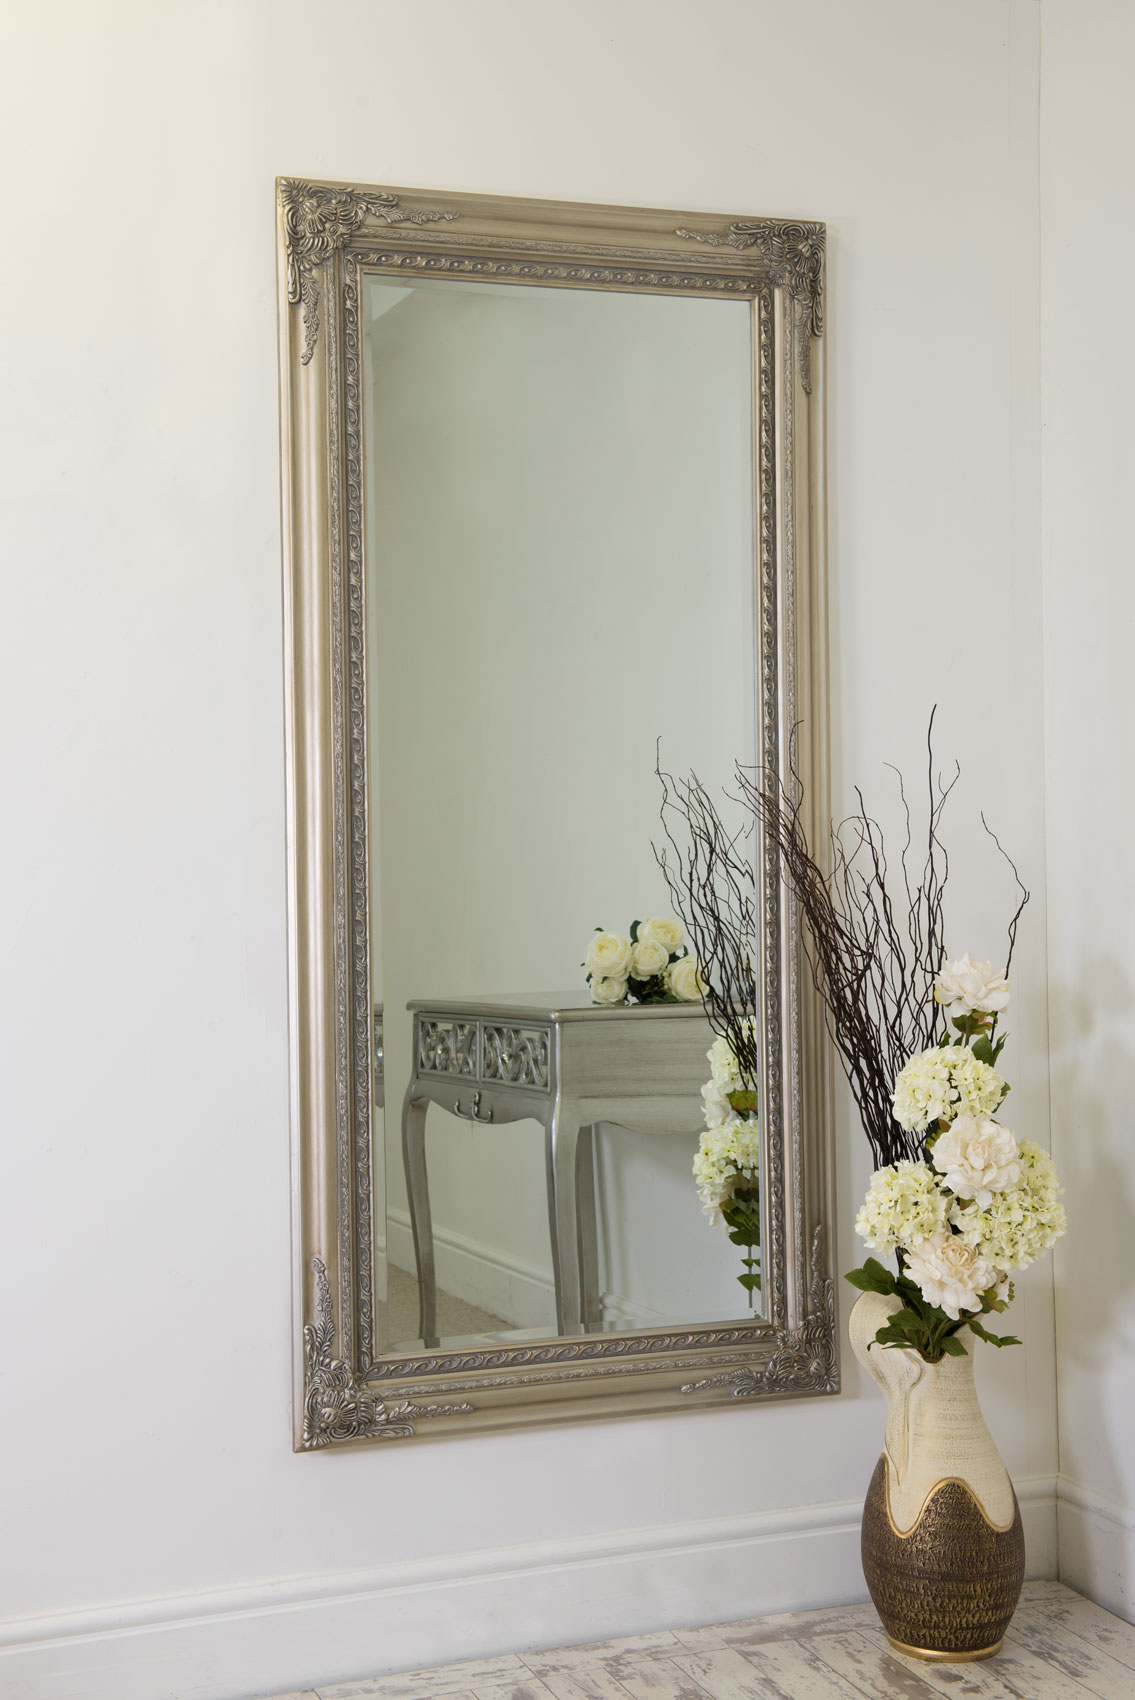 Large silver antique style wall mirror wood 5ft10 x 2ft10 for Antique looking wall mirrors